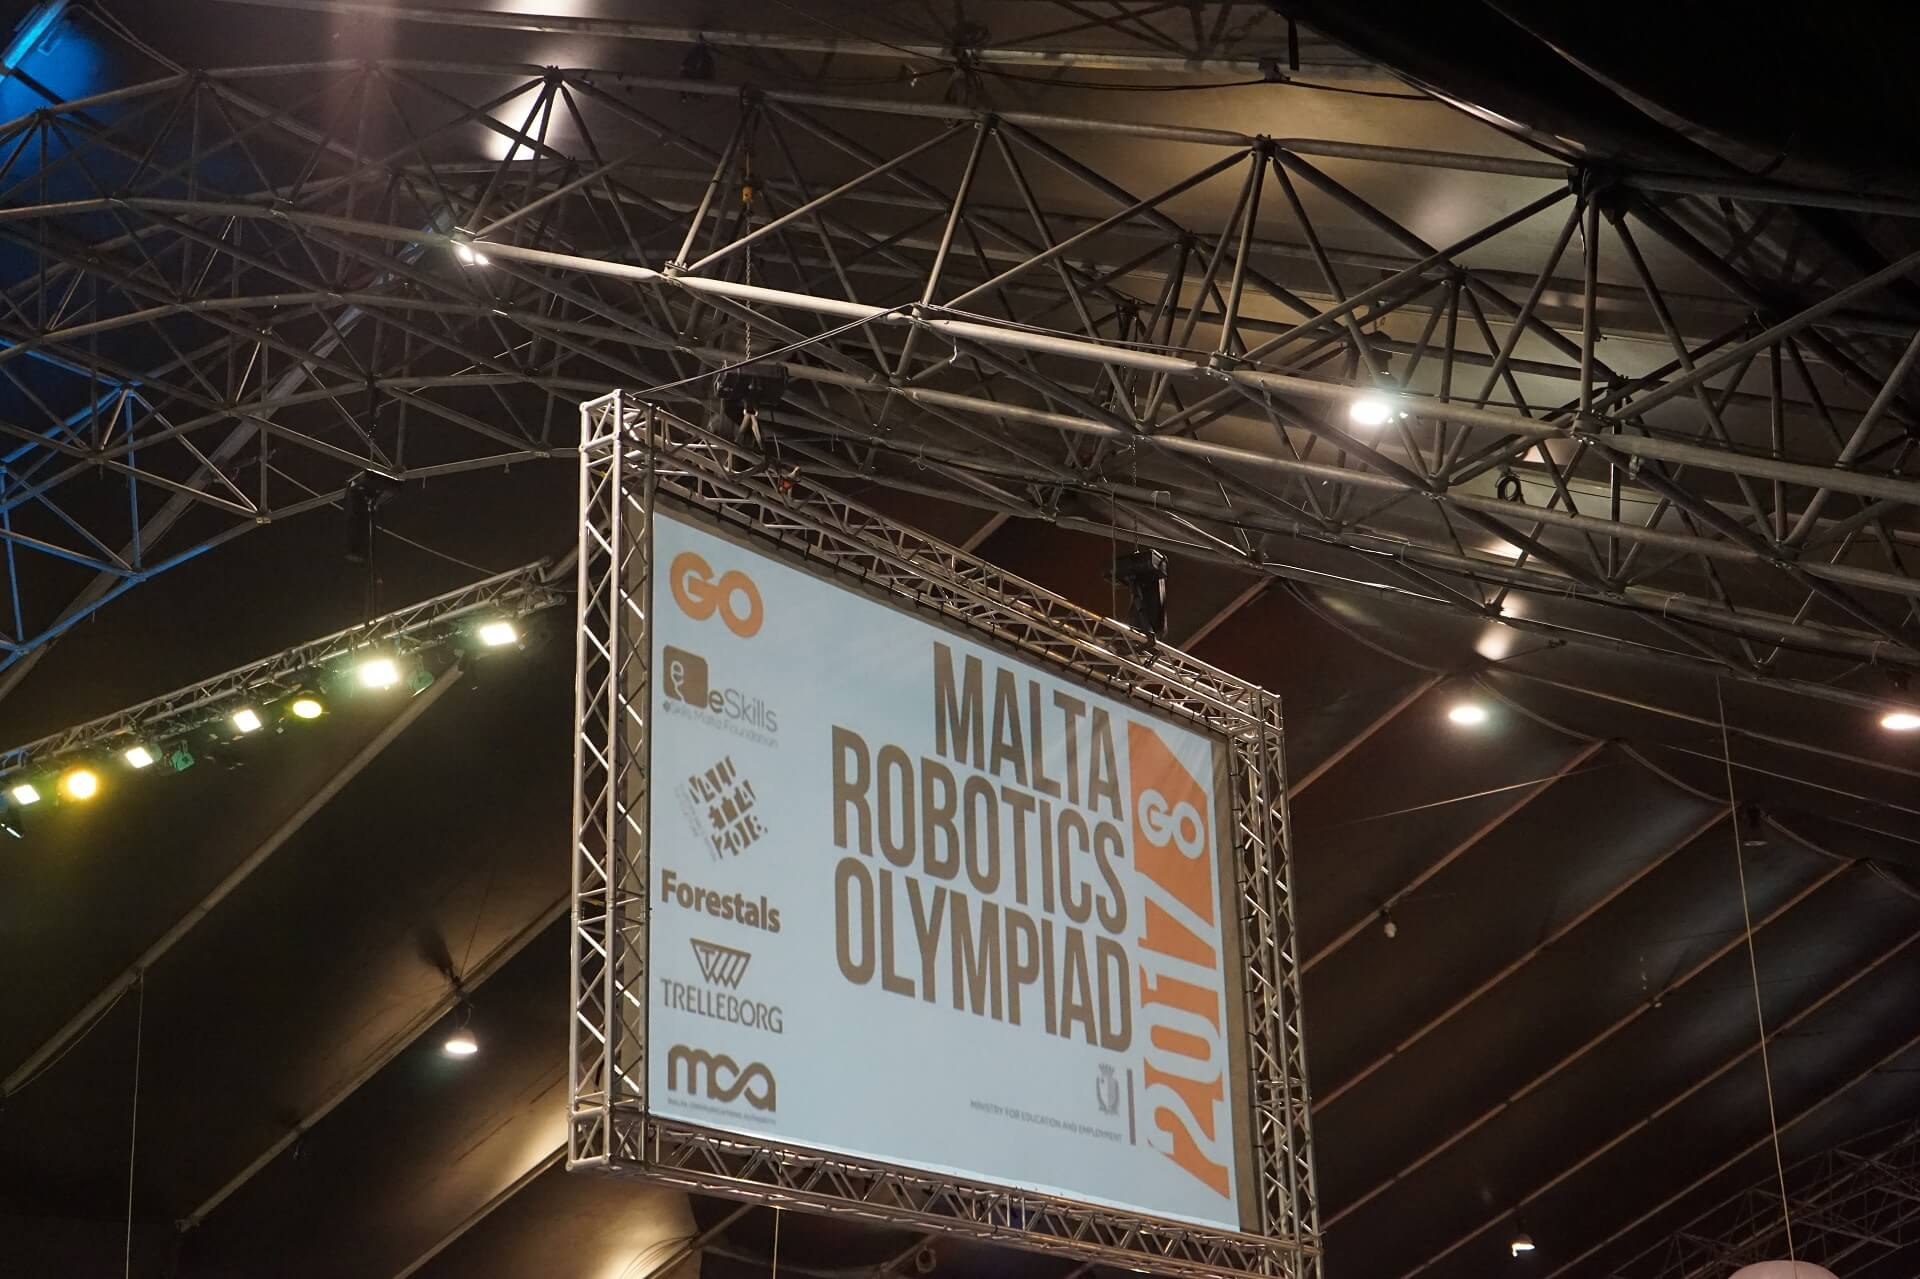 LightBuzz @ Robotics Olympiad